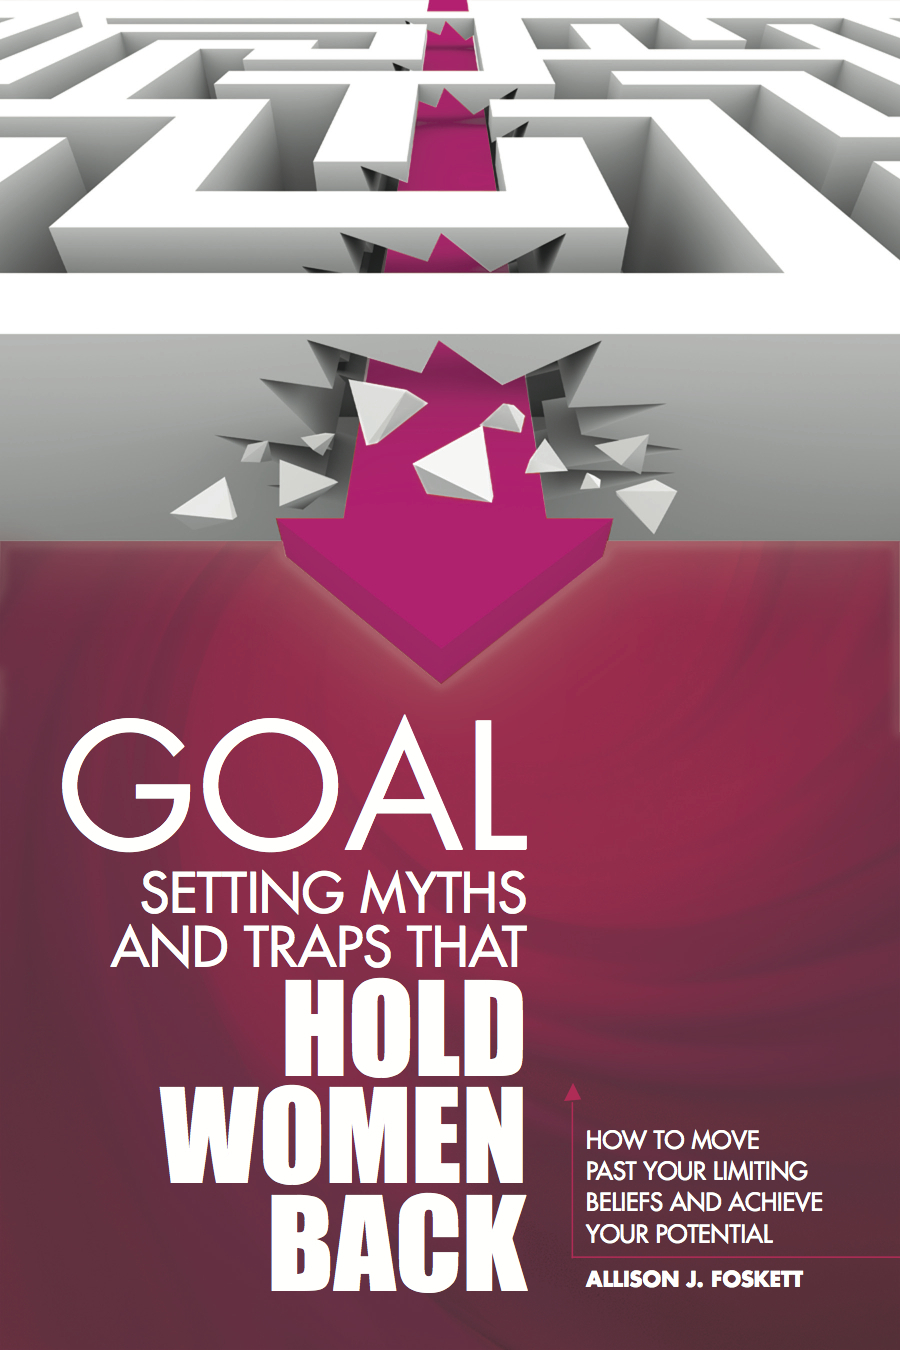 Goal Setting Myths and Traps that Hold Women Back: How to Move Past Your Limiting Beliefs and Achieve Your Potential By: Allison Foskett